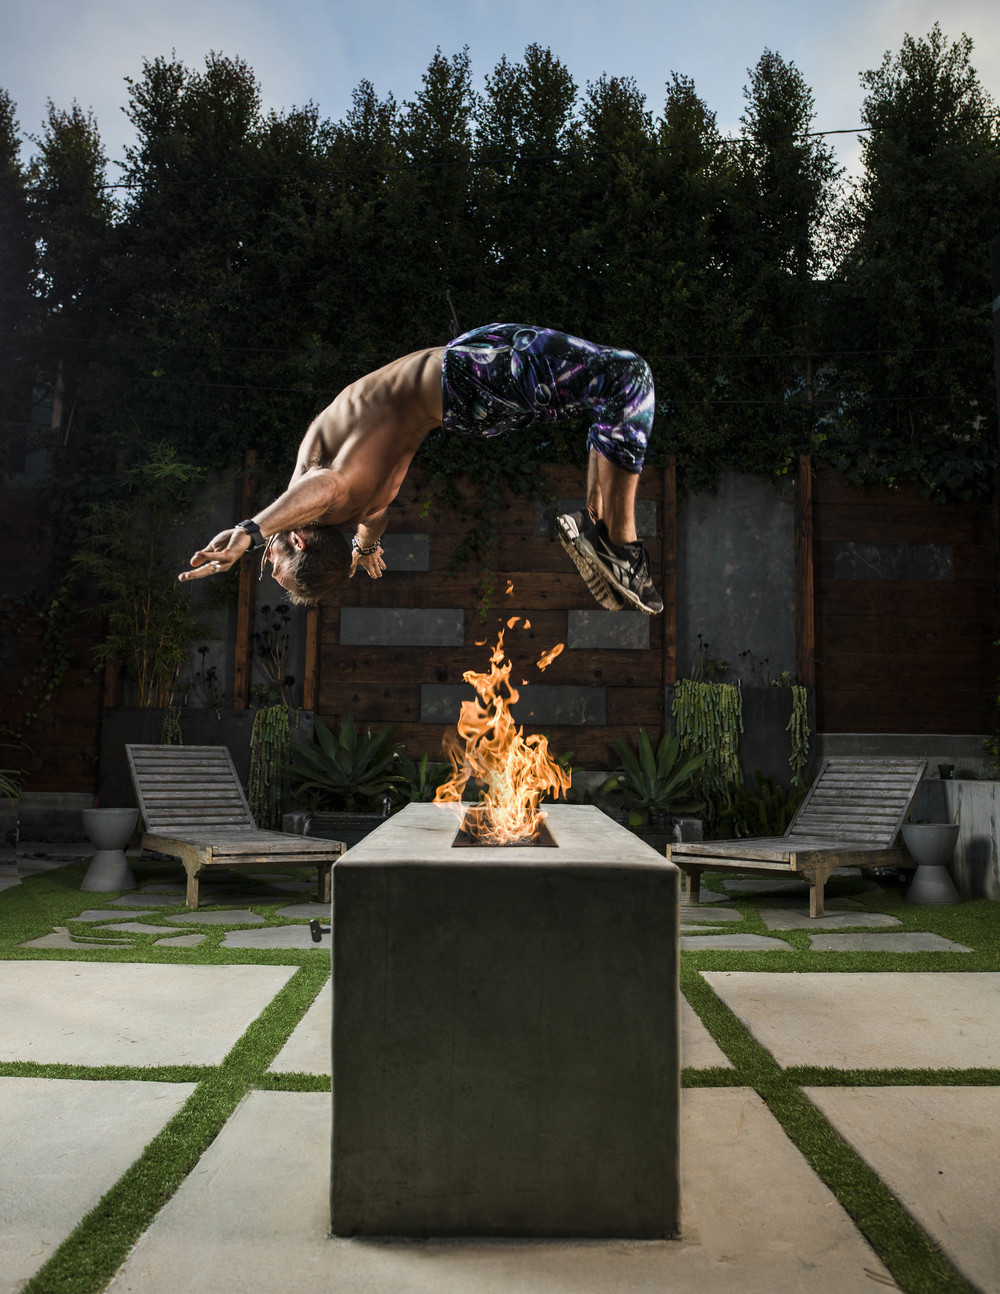 travis-Brewer-Fire-Flip.jpg